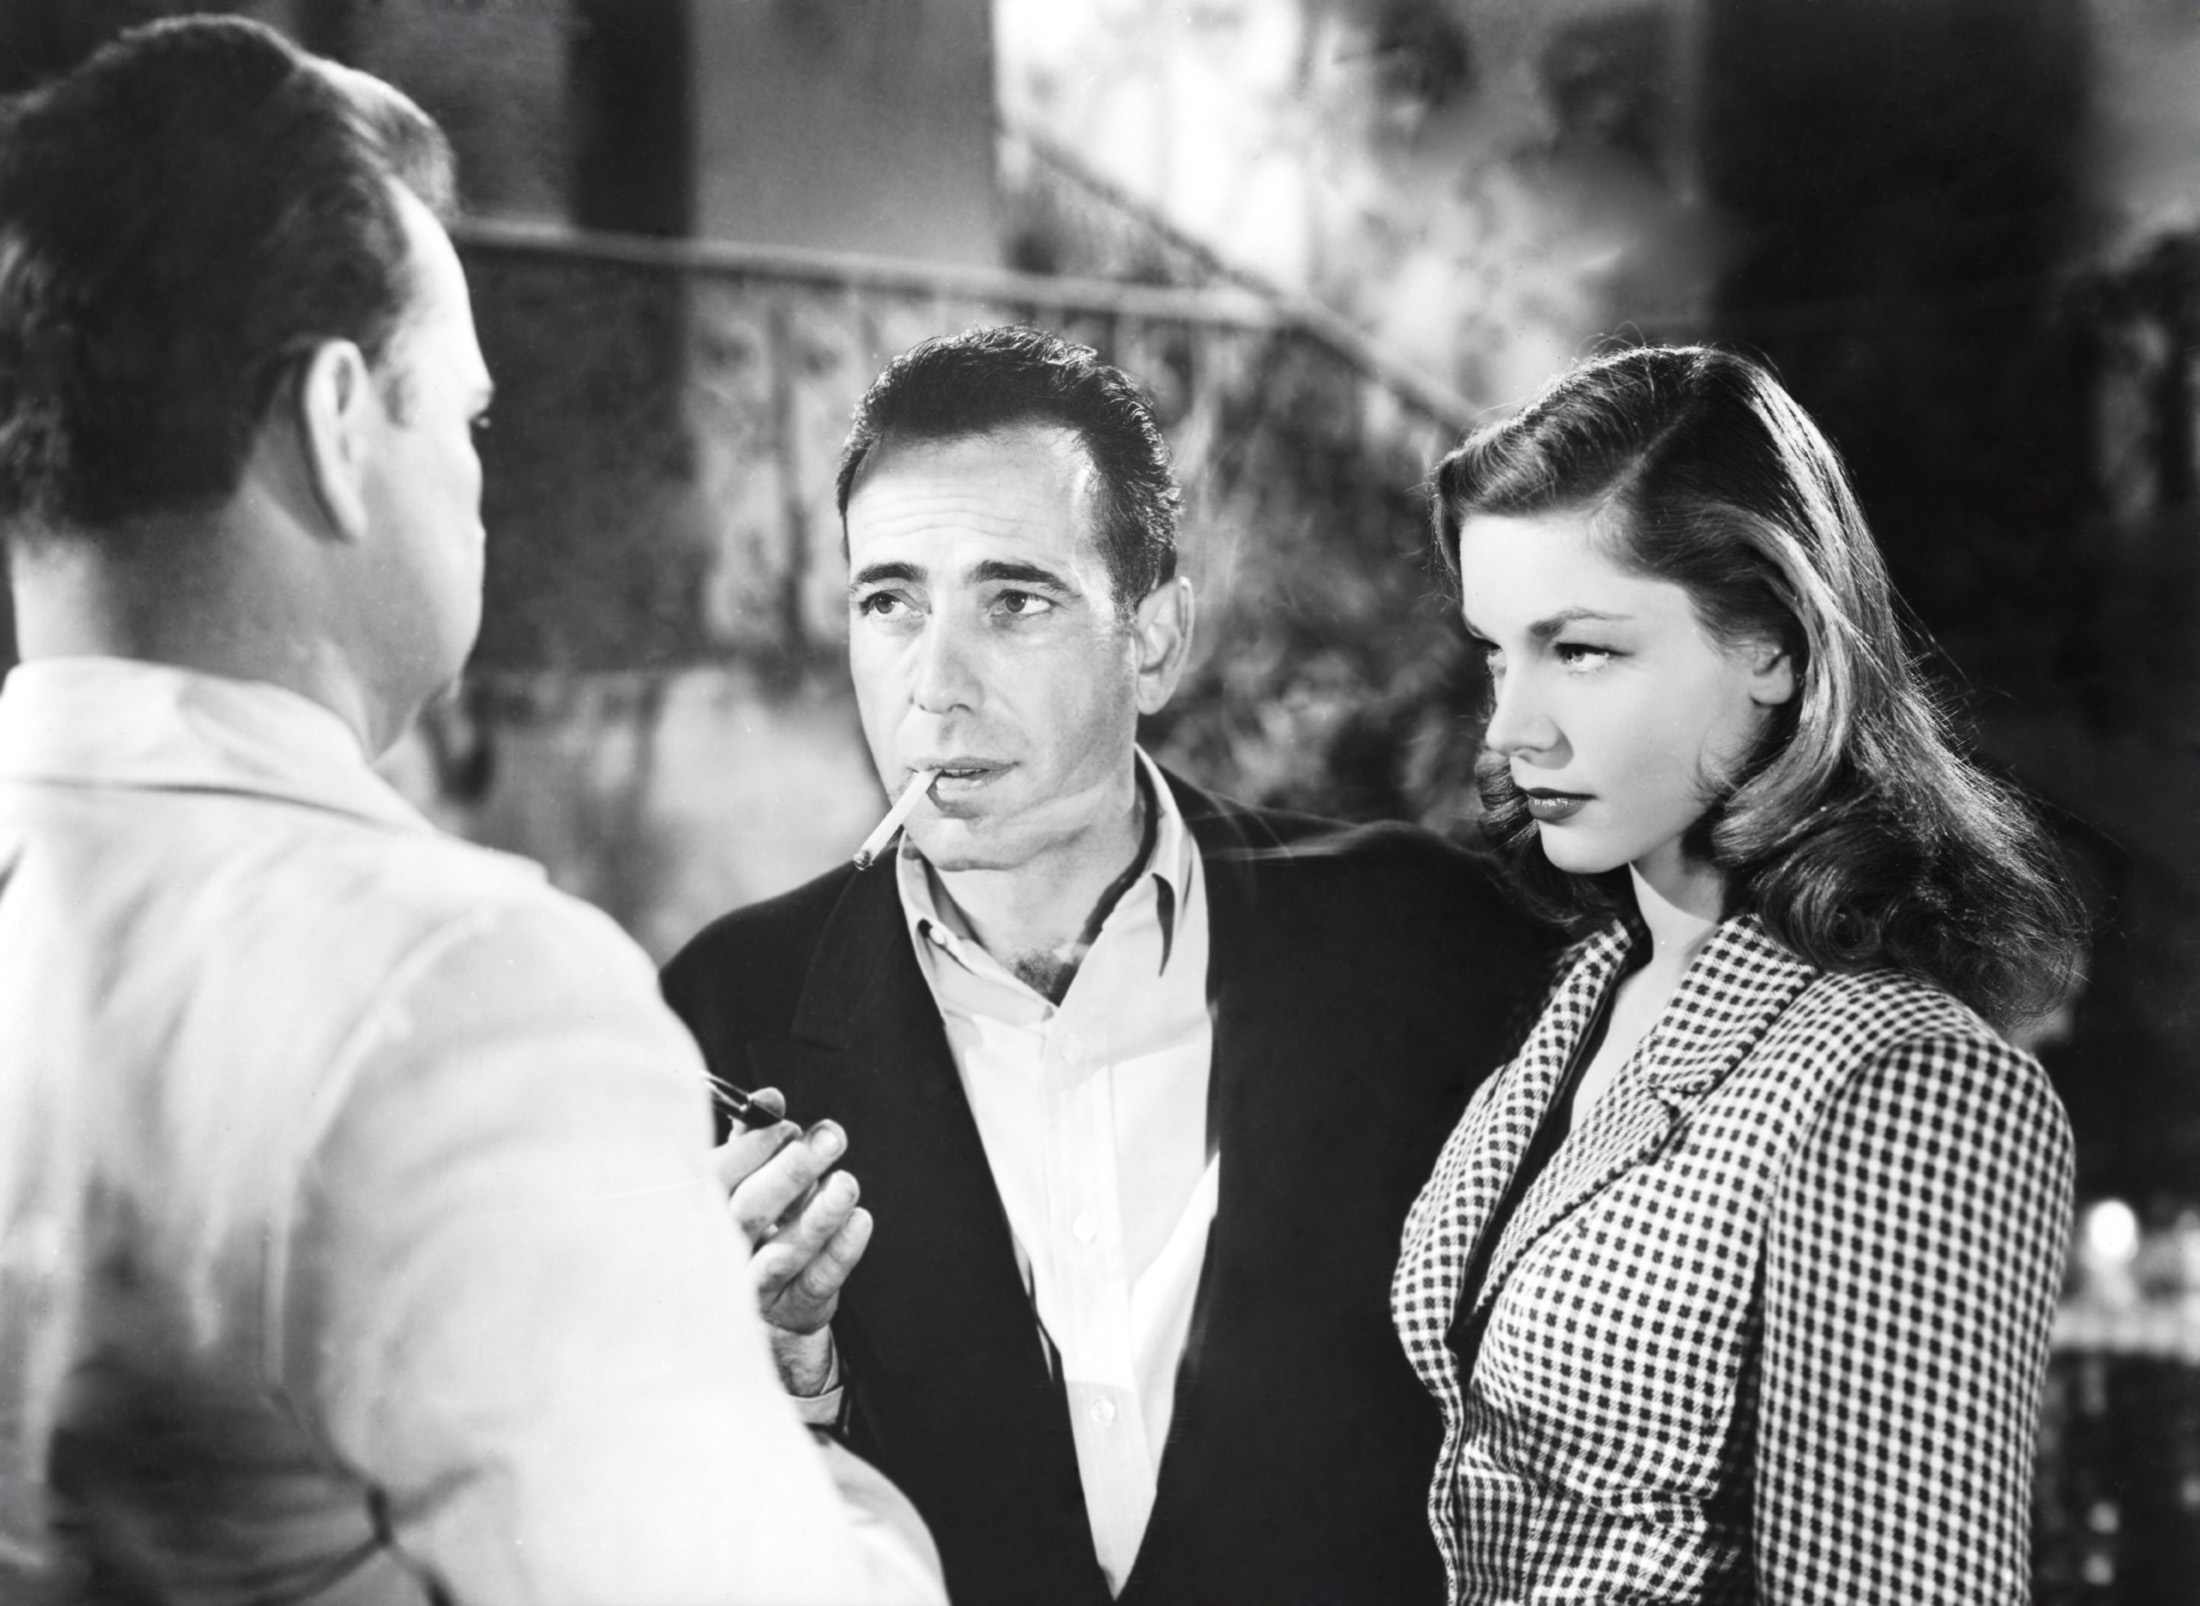 To have and have not for Lauren bacall married to humphrey bogart